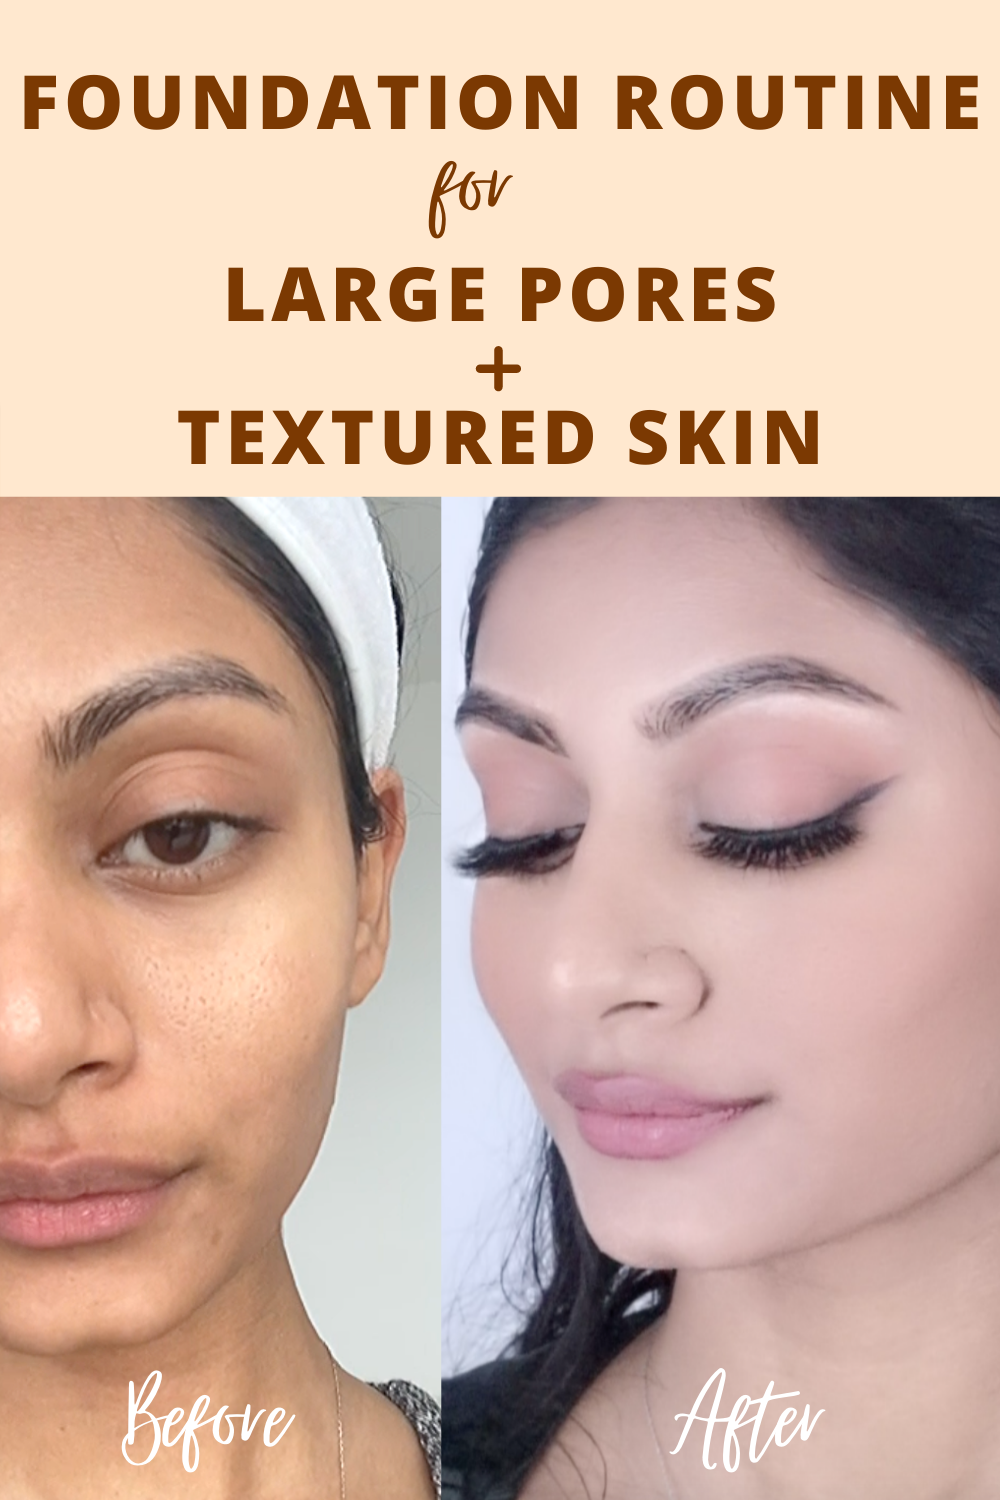 Skin care and foundation routine for large pores and textured skin